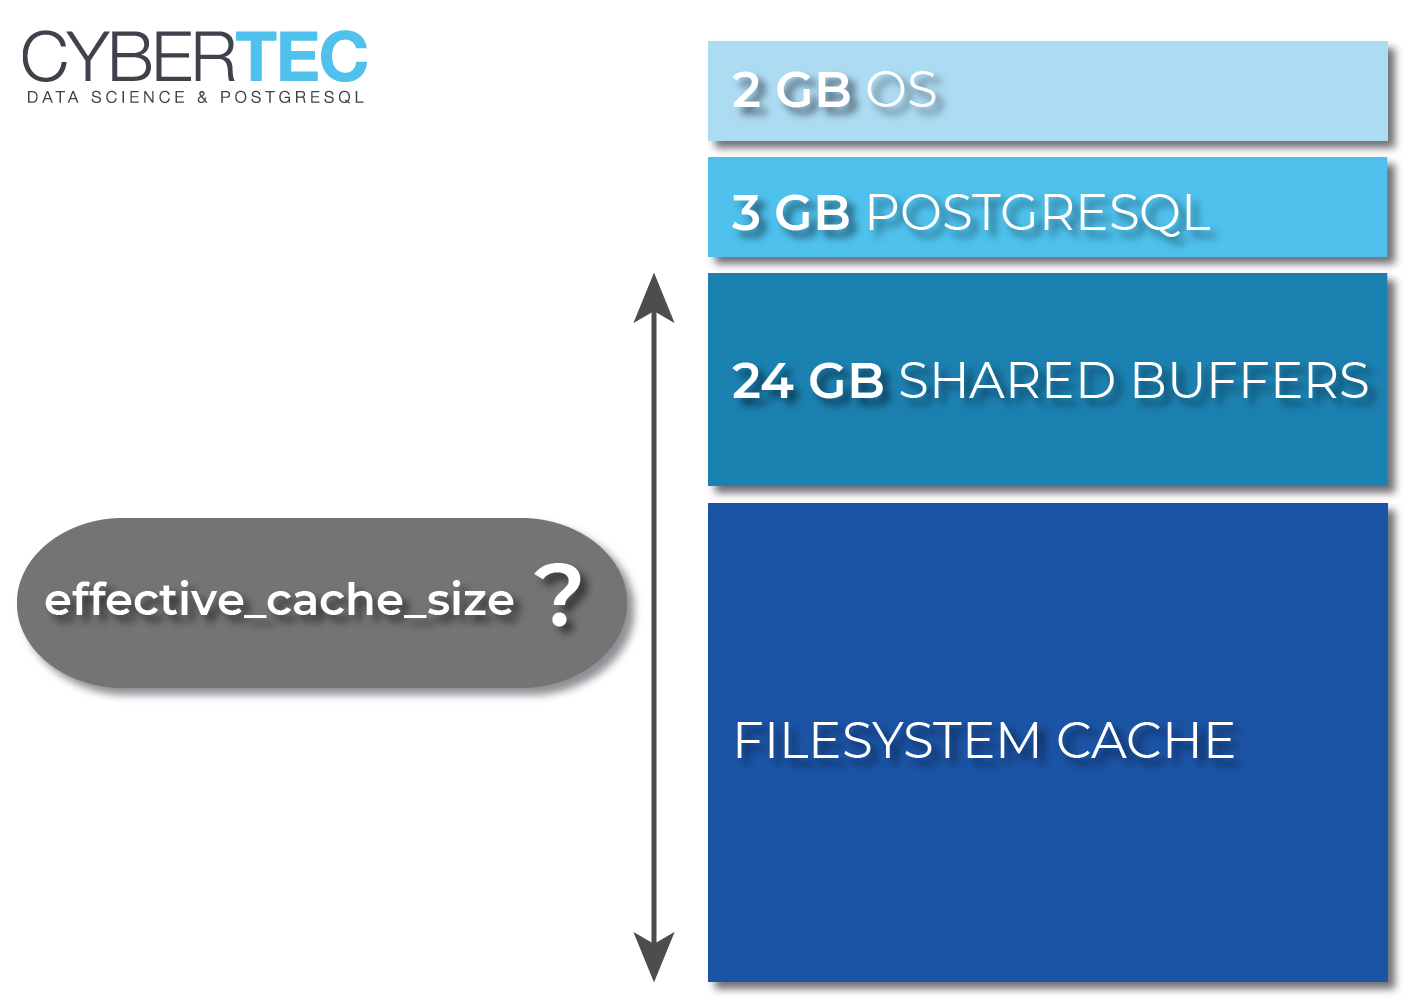 effective-cache-size